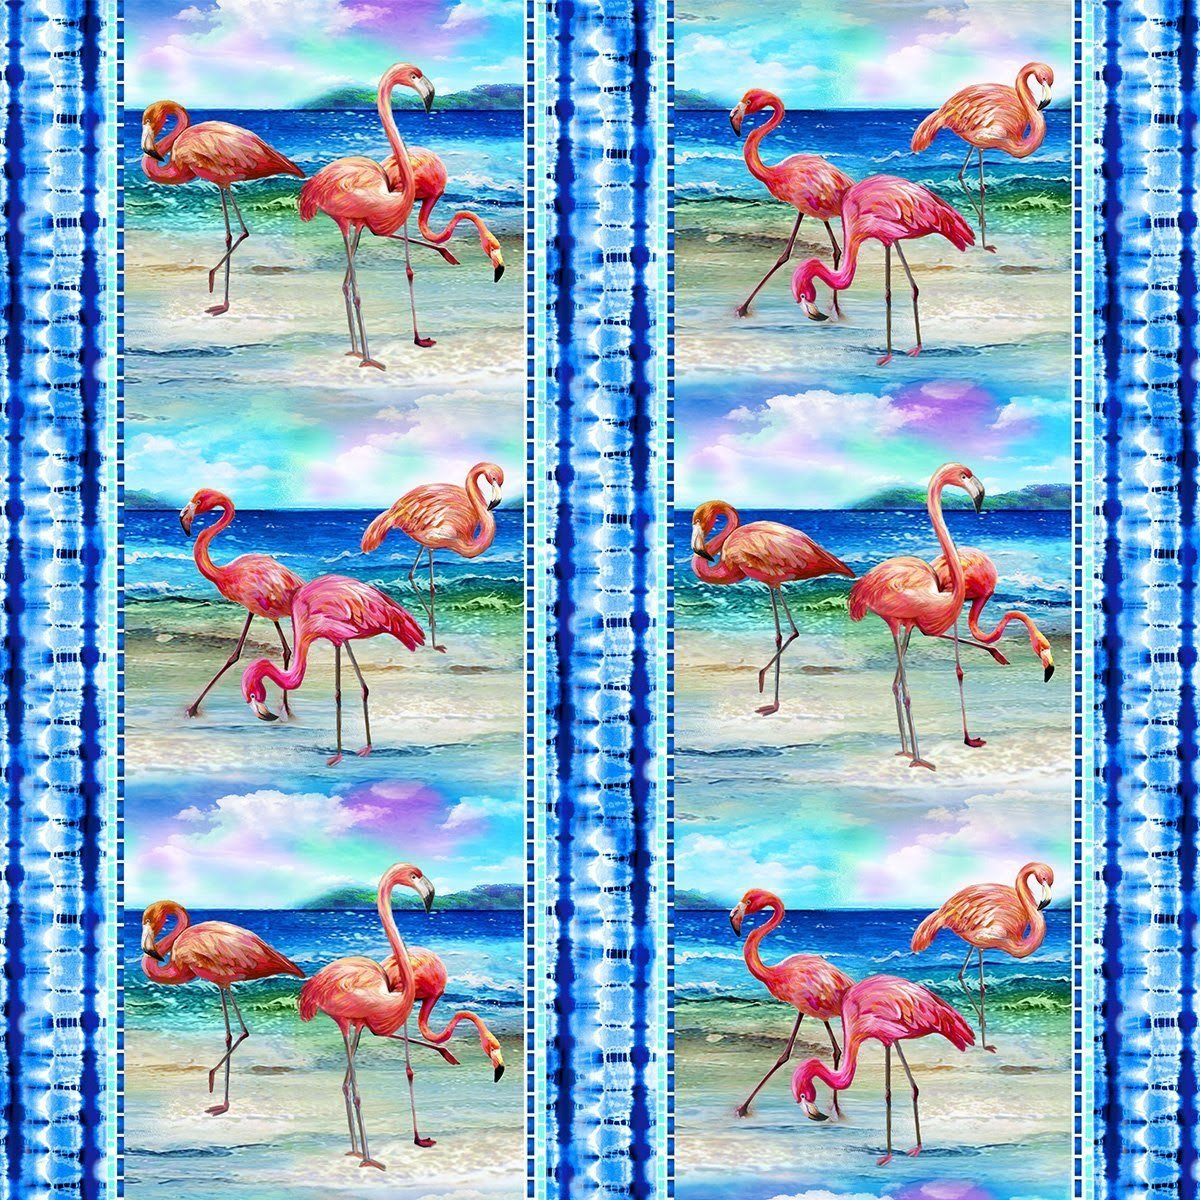 Flamingo Scenic Striped Blue